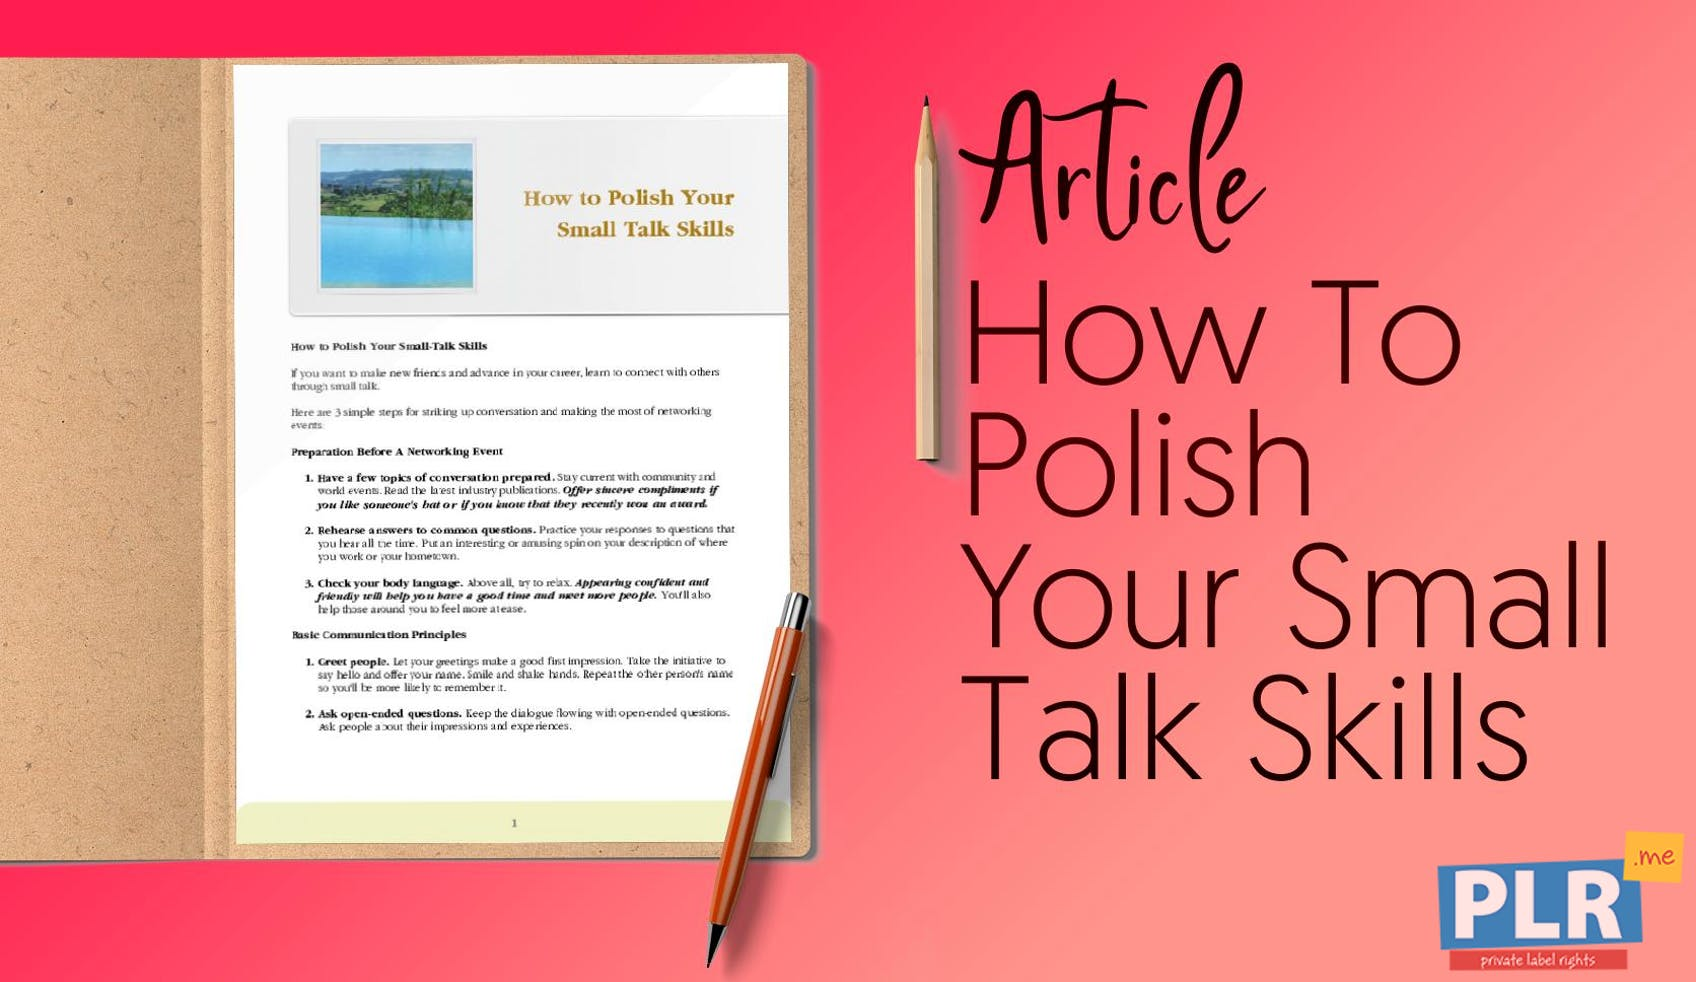 How To Polish Your Small Talk Skills